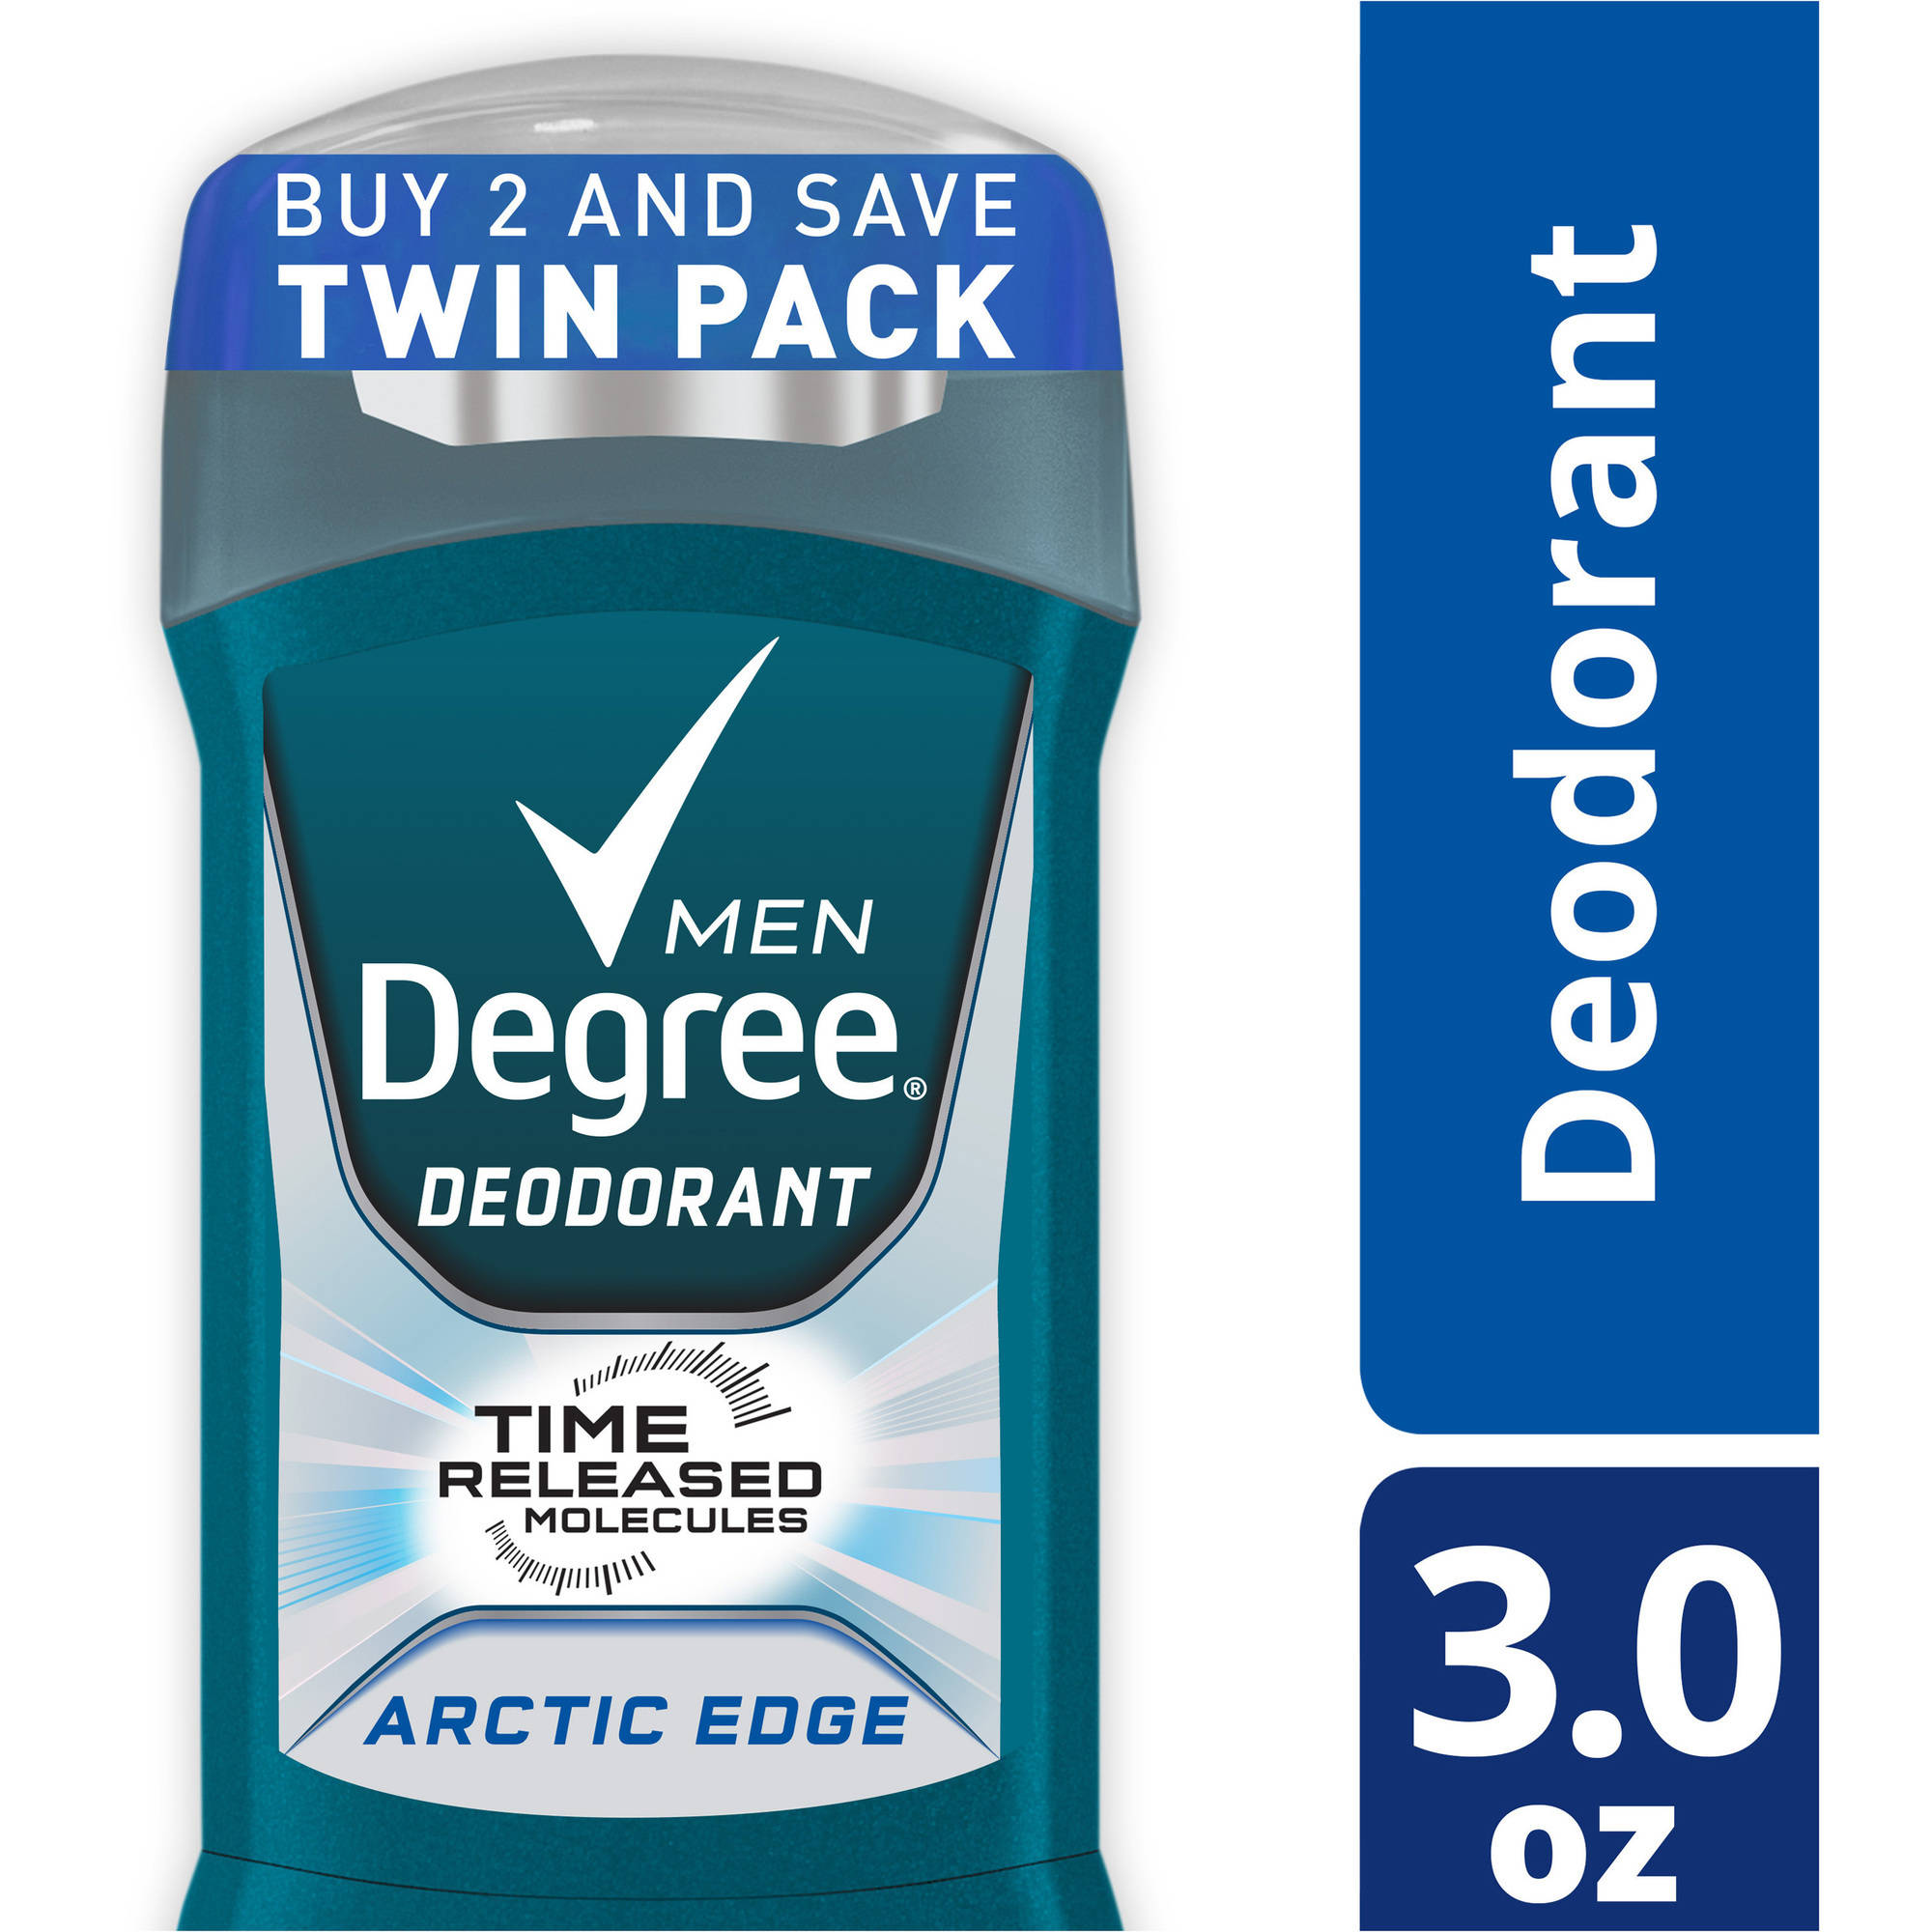 Degree Men Fresh Arctic Edge Deodorant, 3 oz, Twin Pack